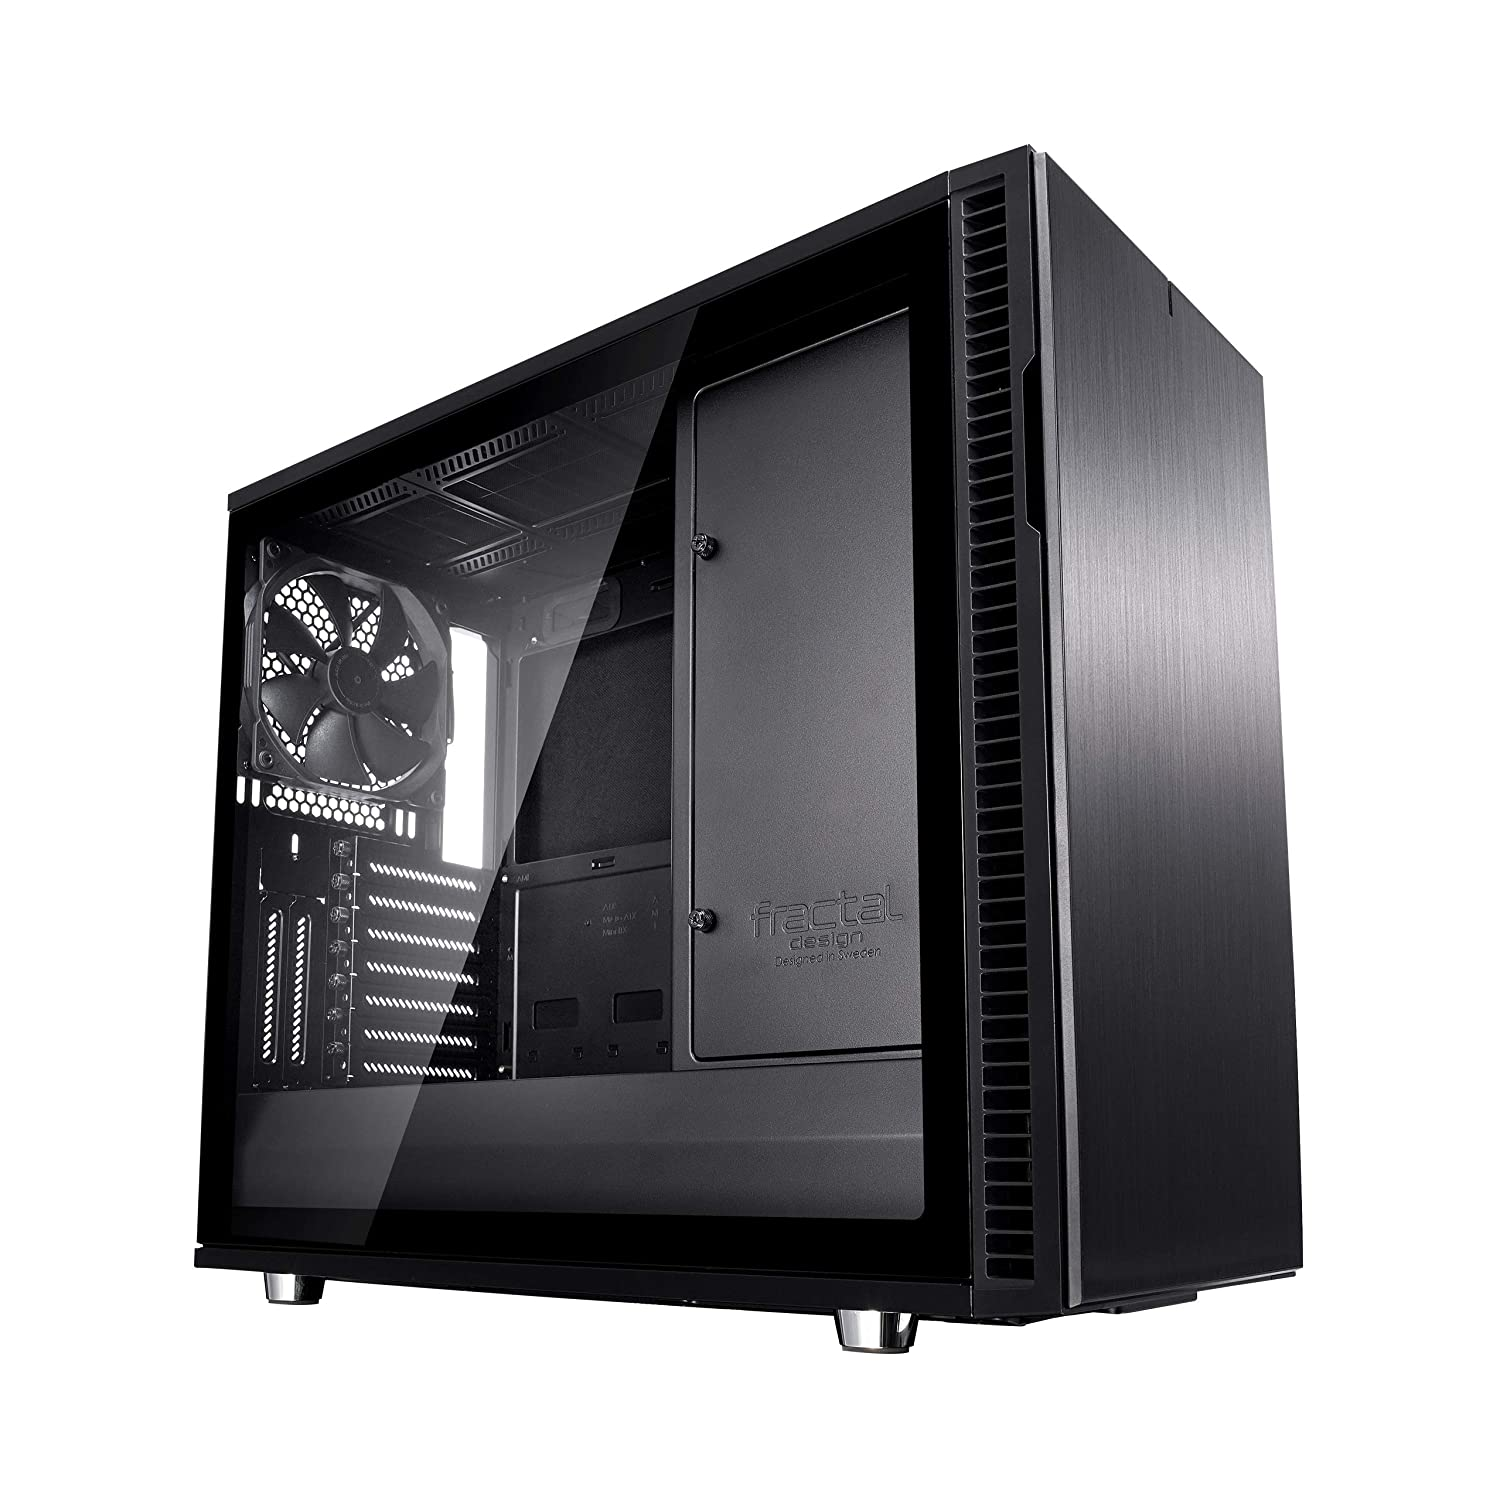 Fractal Design Define R6 USB-C - Mid Tower Computer Case - ATX - Optimized for High Airflow and Silent Computing with Moduvent Technology - Modular Interior - Water-Cooling Ready - Blackout Tg